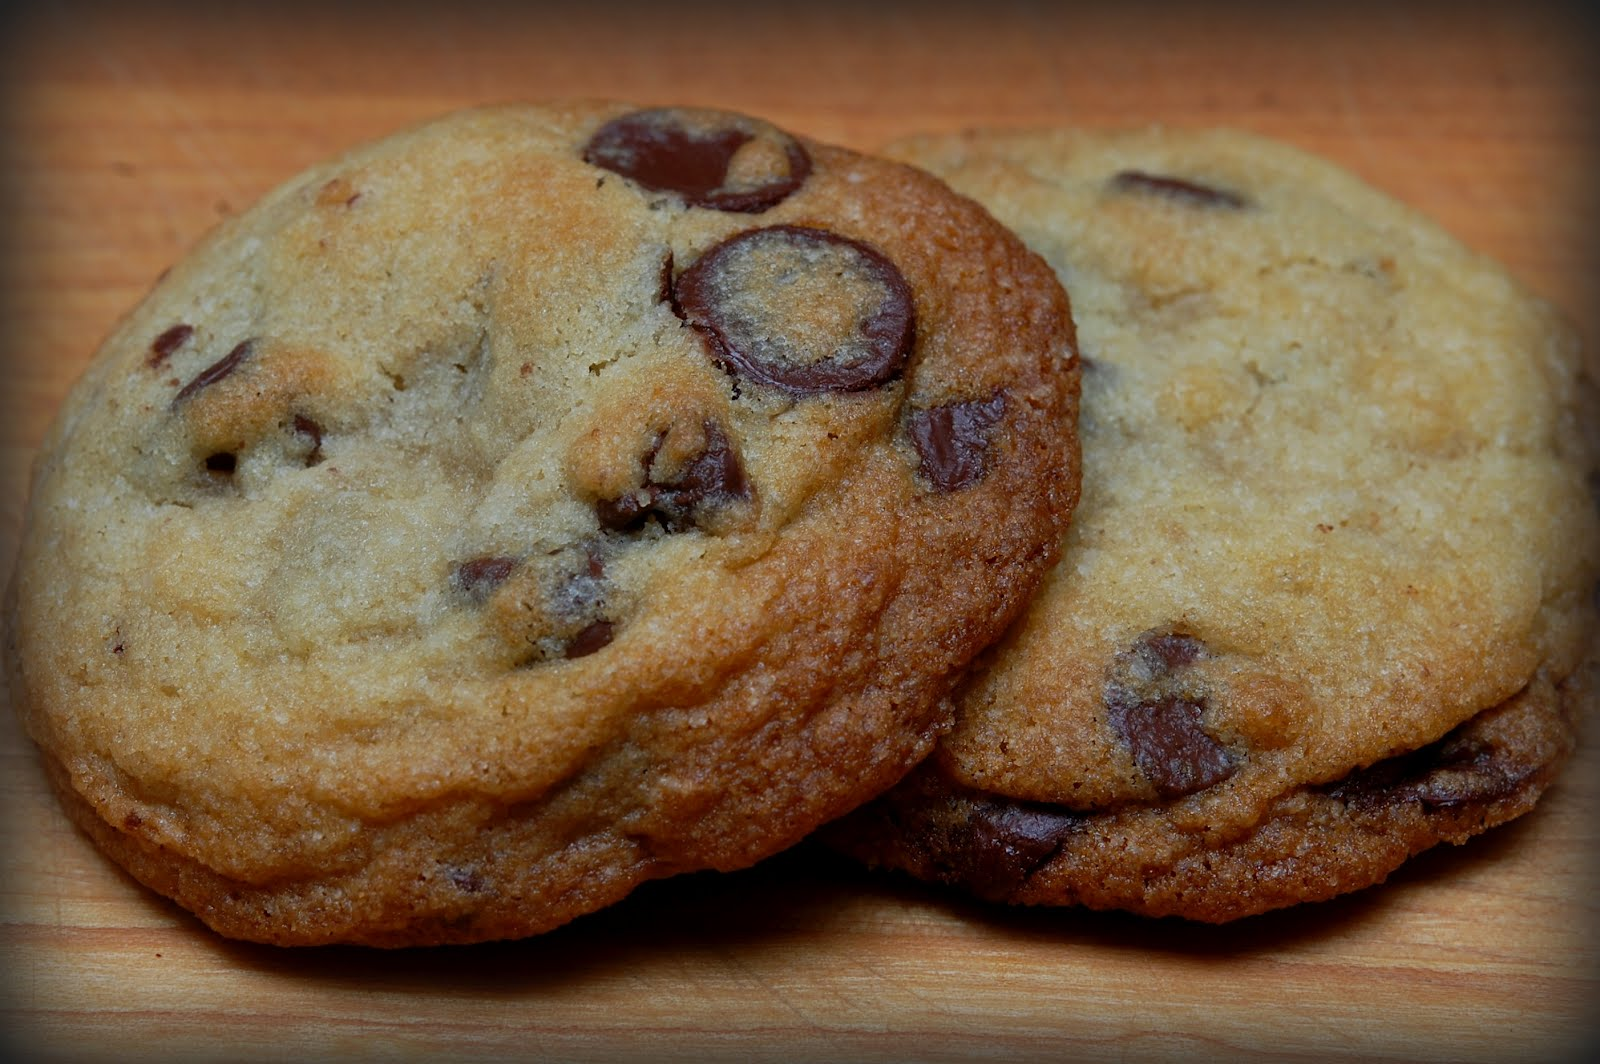 GLUTEN FREE CHOCOLATE CHIP COOKIES - Hugs and Cookies XOXO